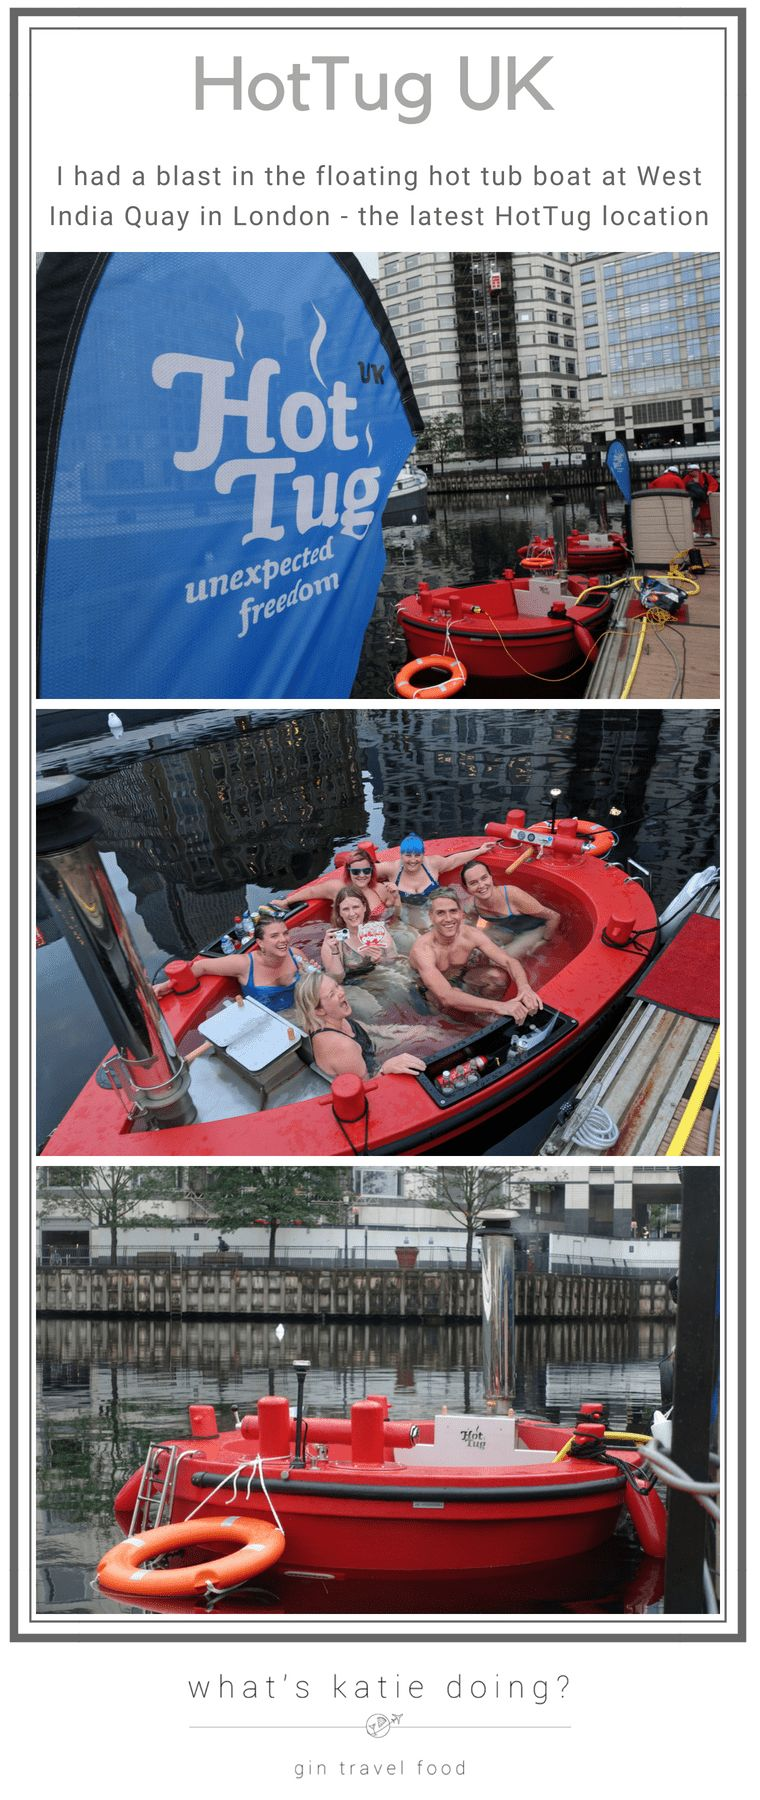 HotTug UK - the latest location in West India Quay, London